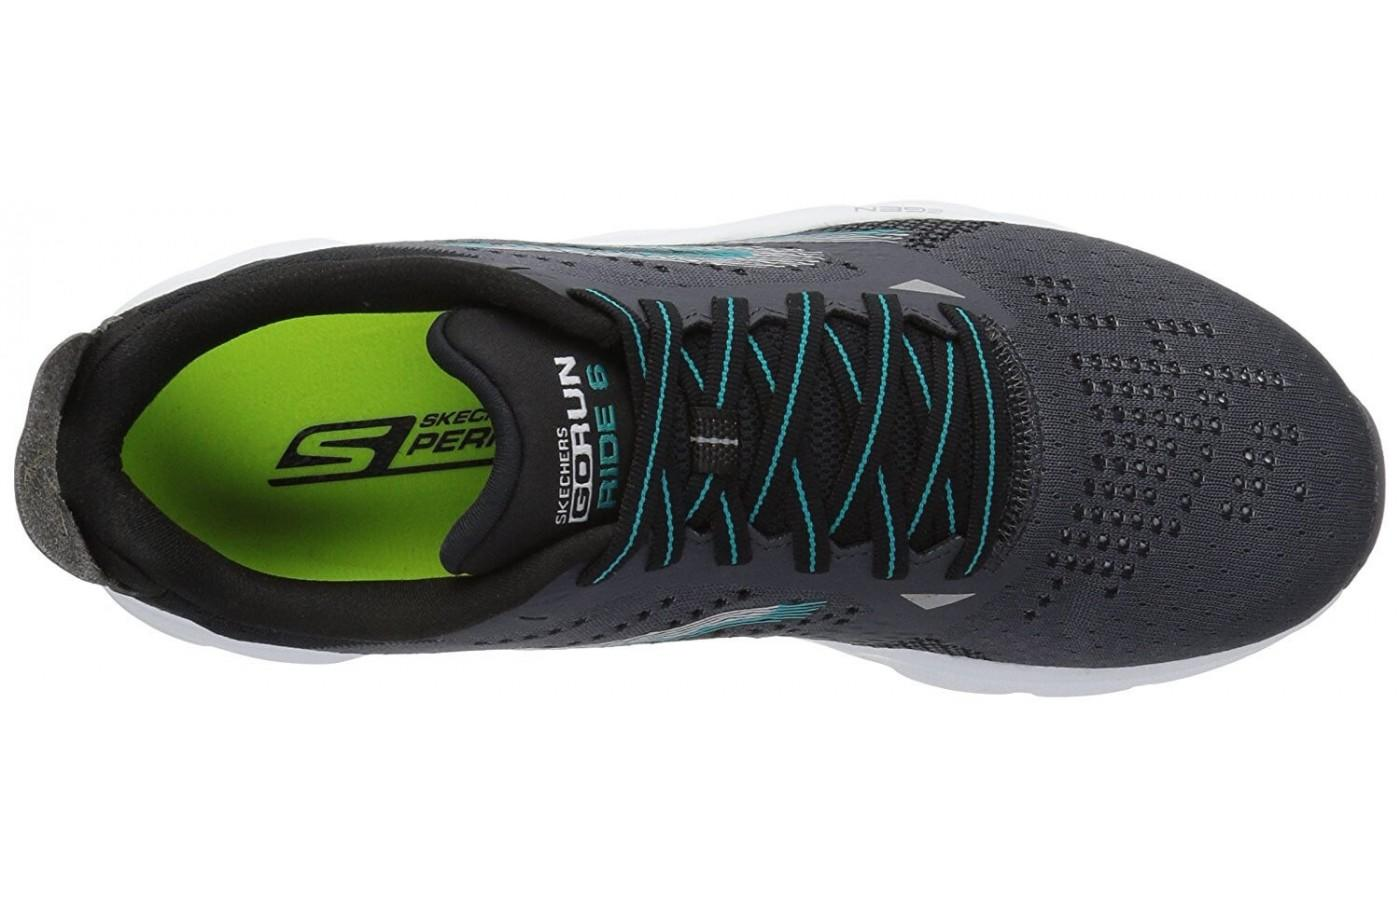 after lace-up, the upper of the Skecher GOrun Ride 6 has a sock-like snug fit